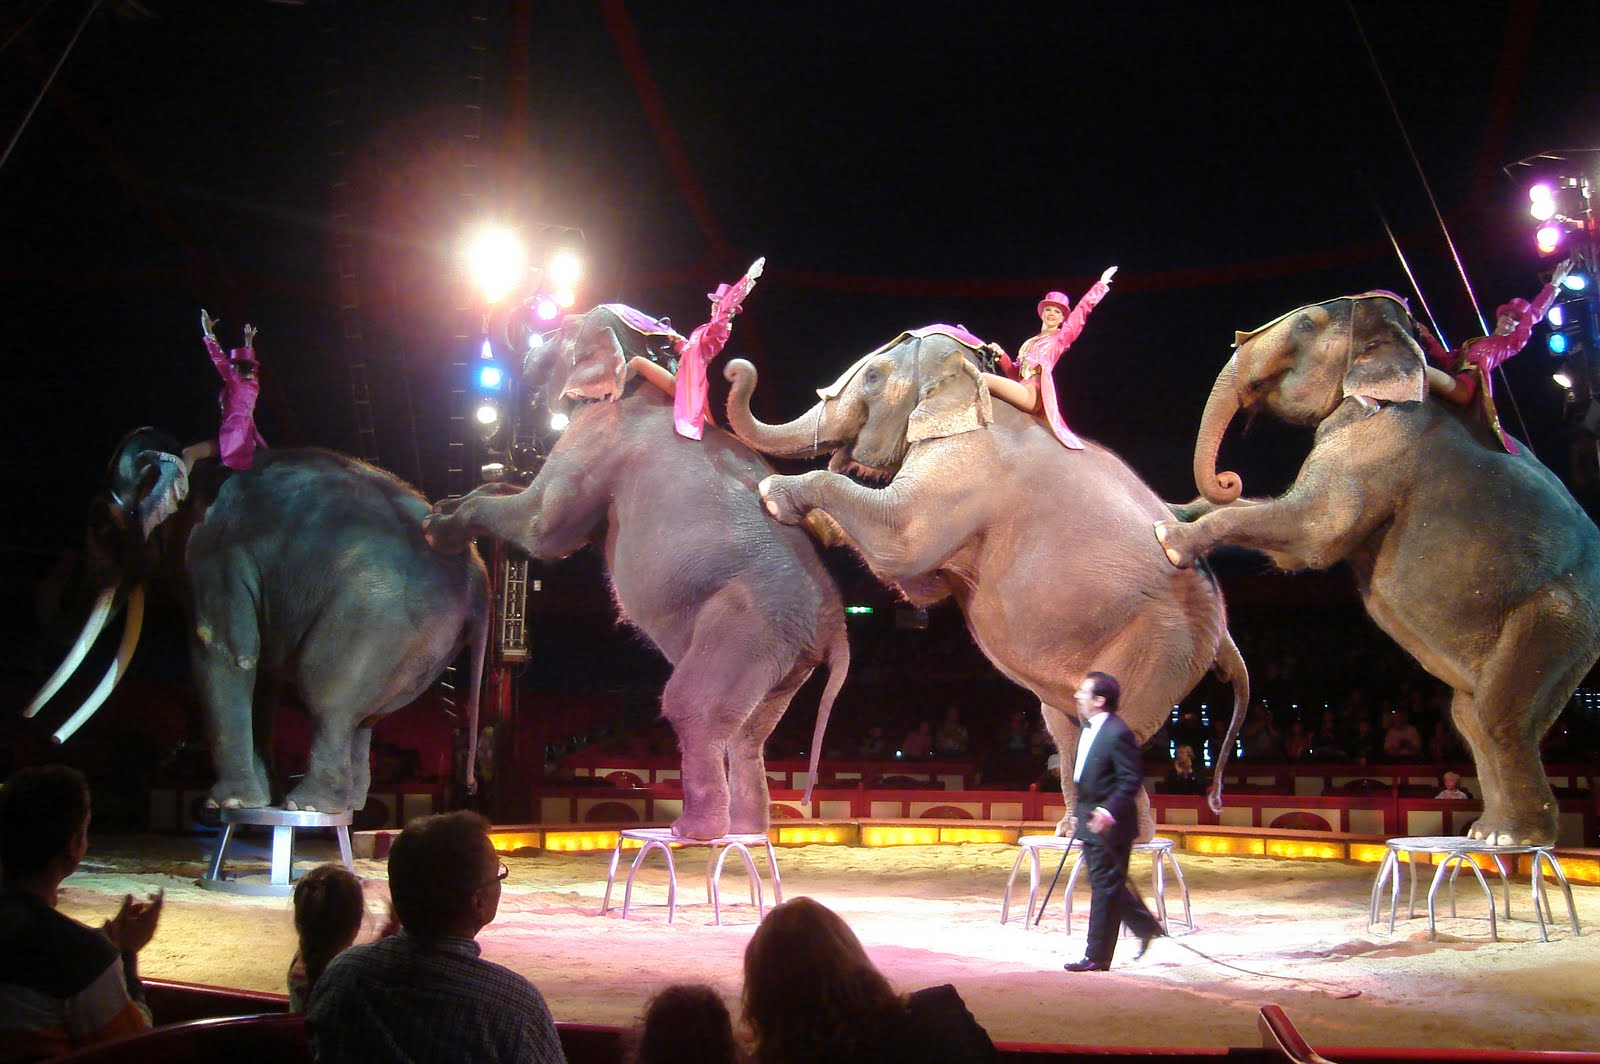 the circus life of an animal Ringling brothers was also embroiled in a 14-year lawsuit in which animal rights groups alleged the circus where circus elephants a shine to circus life.